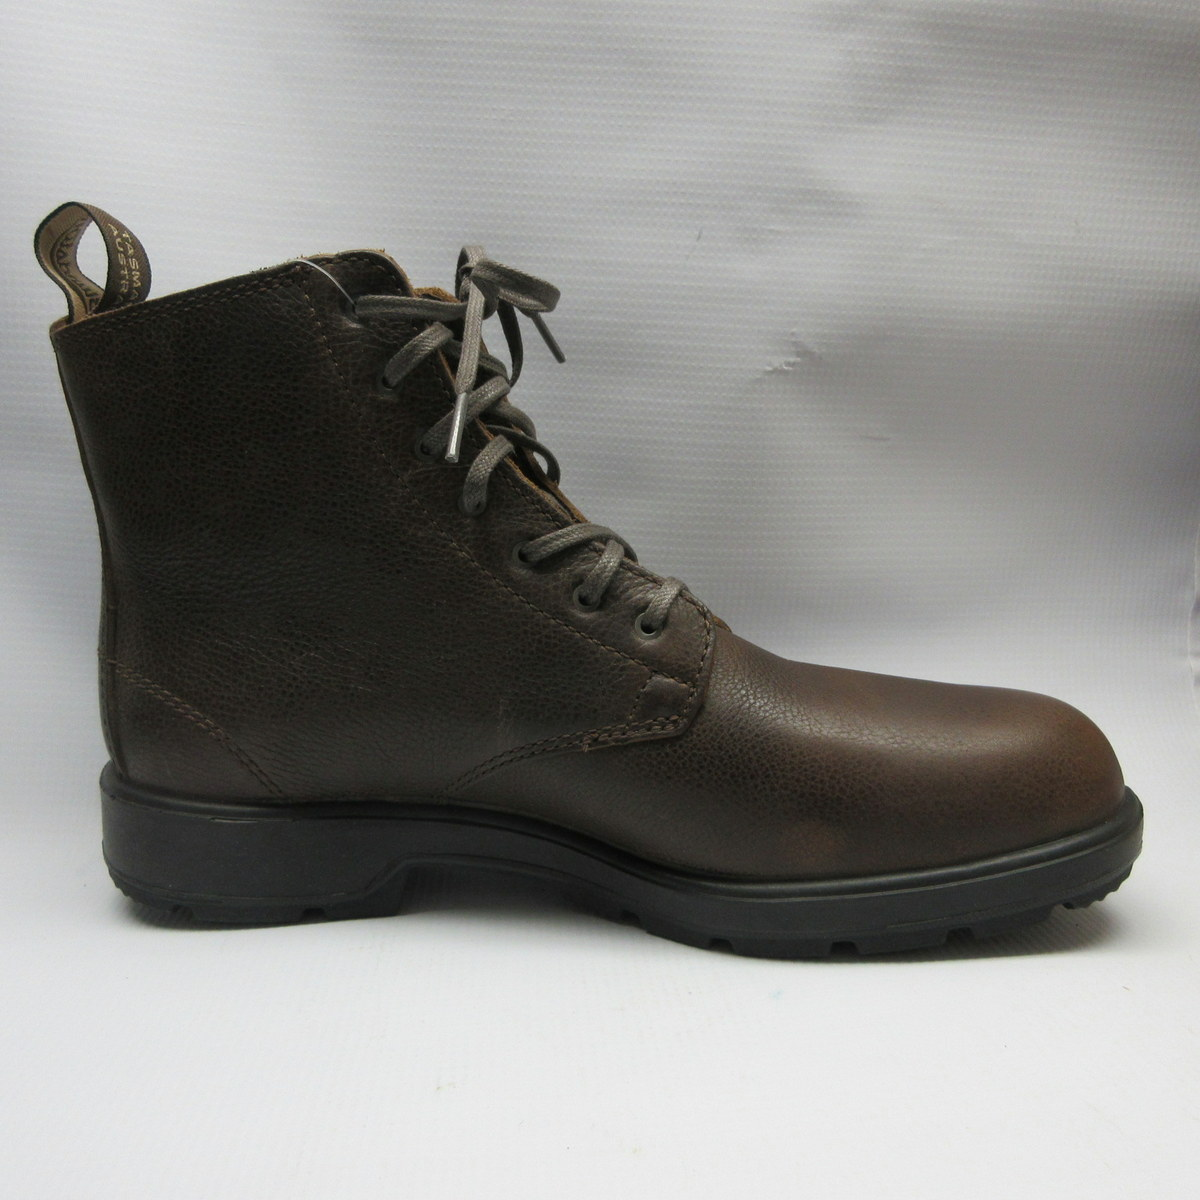 d753d1f9375f6 Blundstone Boots 1454 Lace-up in Brown Tumble — Cabaline